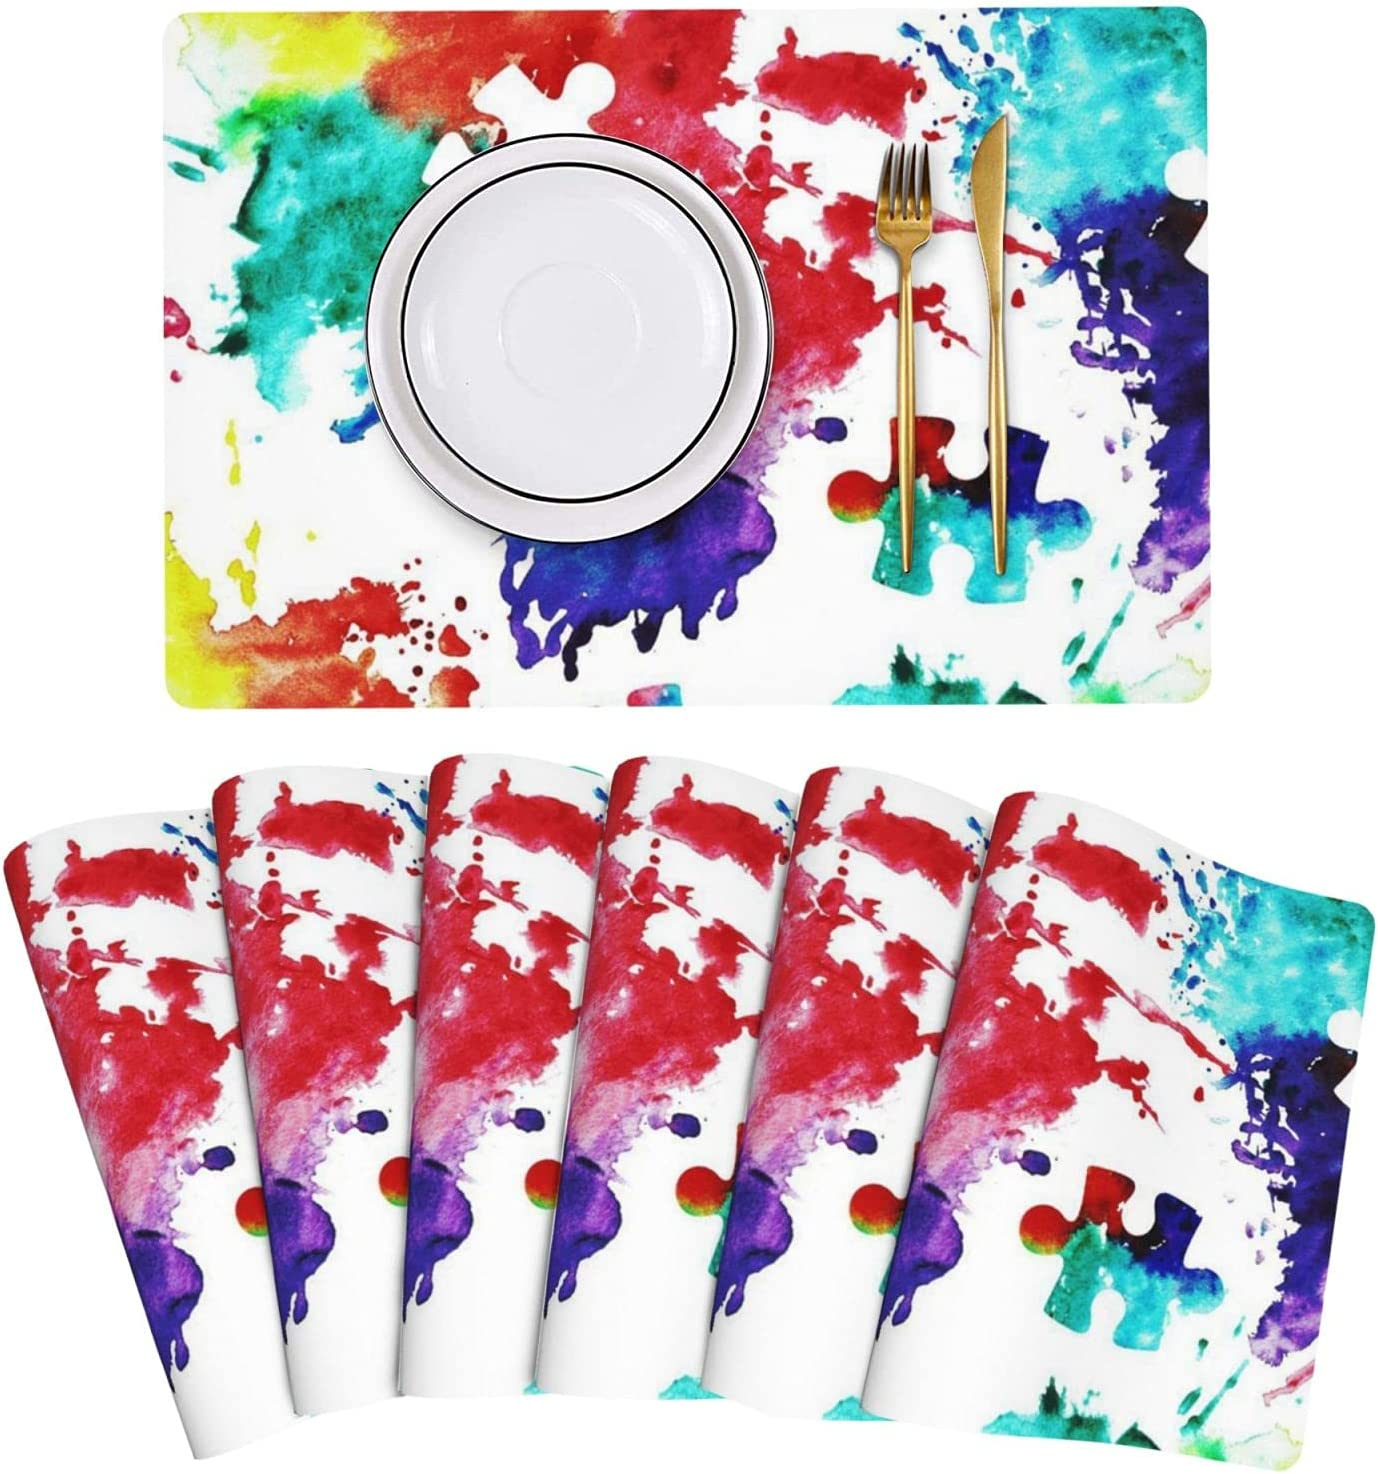 Puzzle Autism Awareness Watercolor New Miami Mall Orleans Mall Splatter Tab Leather Placemat